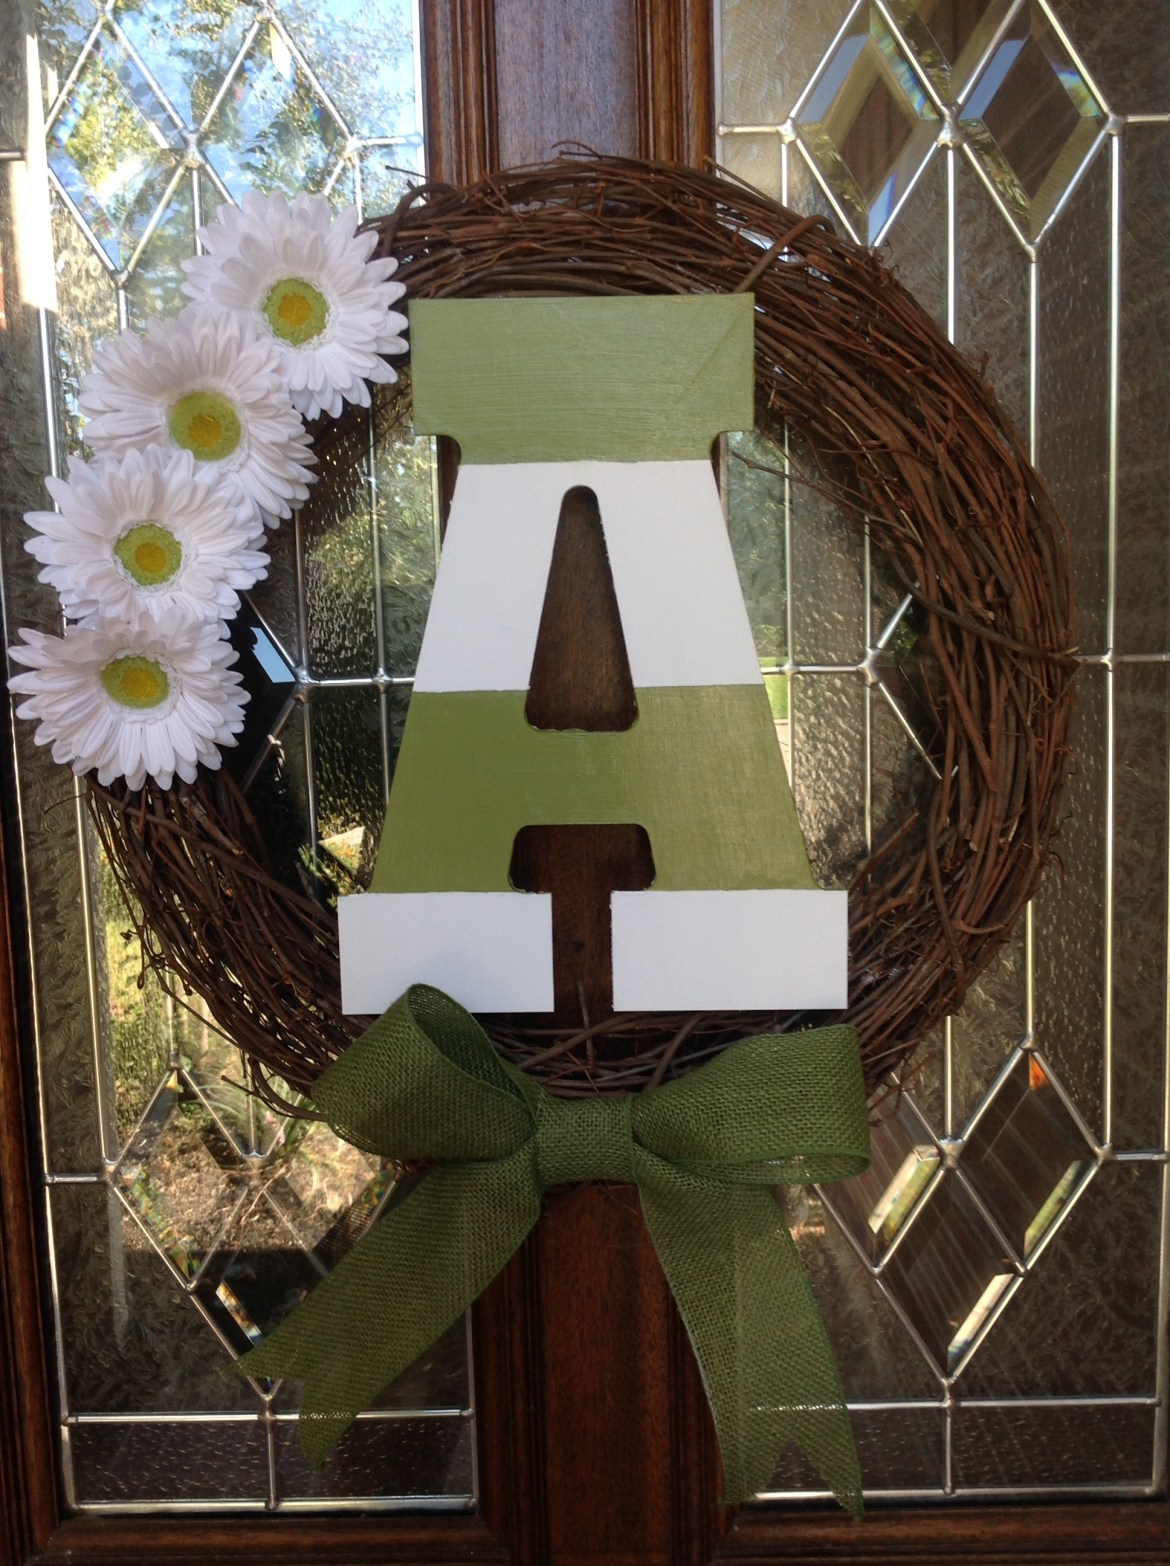 Natural Vine Wreath with Daisies, Ribbon Accent and Initial by Whimsical Wreaths by Amy